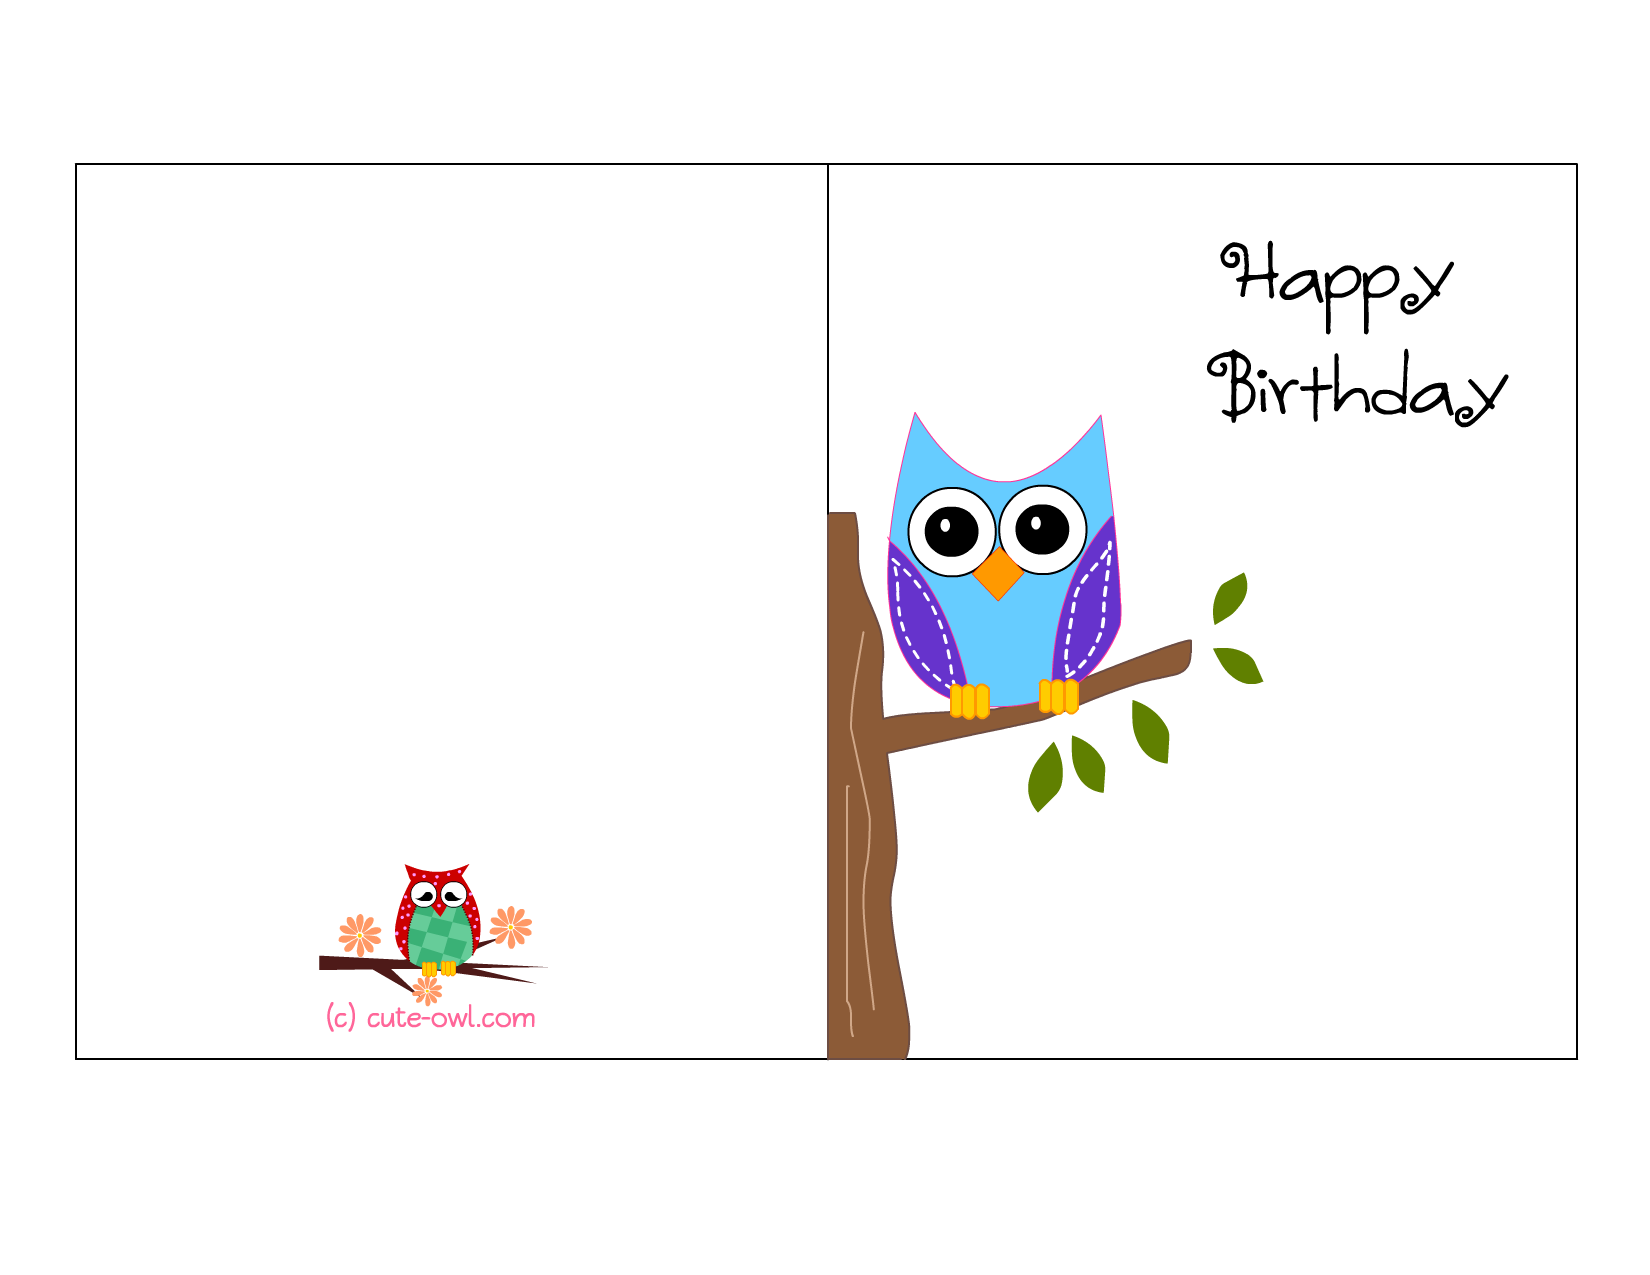 Http Cute Owl Com Happy Birthday Cards Owl Birthday Card 3 Png Free Printable Birthday Cards Happy Birthday Cards Printable Free Birthday Card